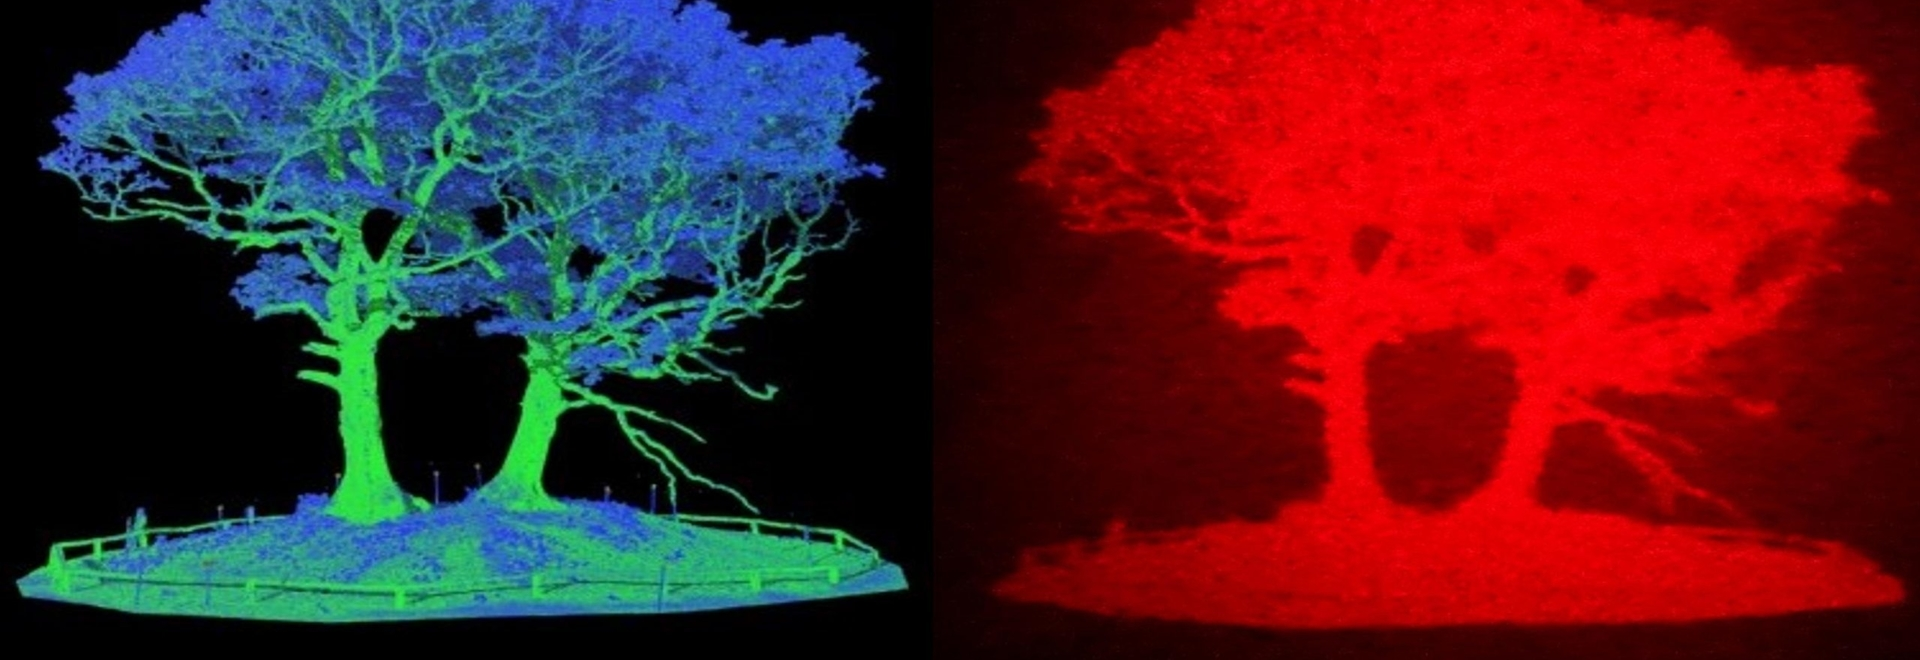 Left: an image of a tree based on LiDAR data. Right: the same image converted to a hologram.